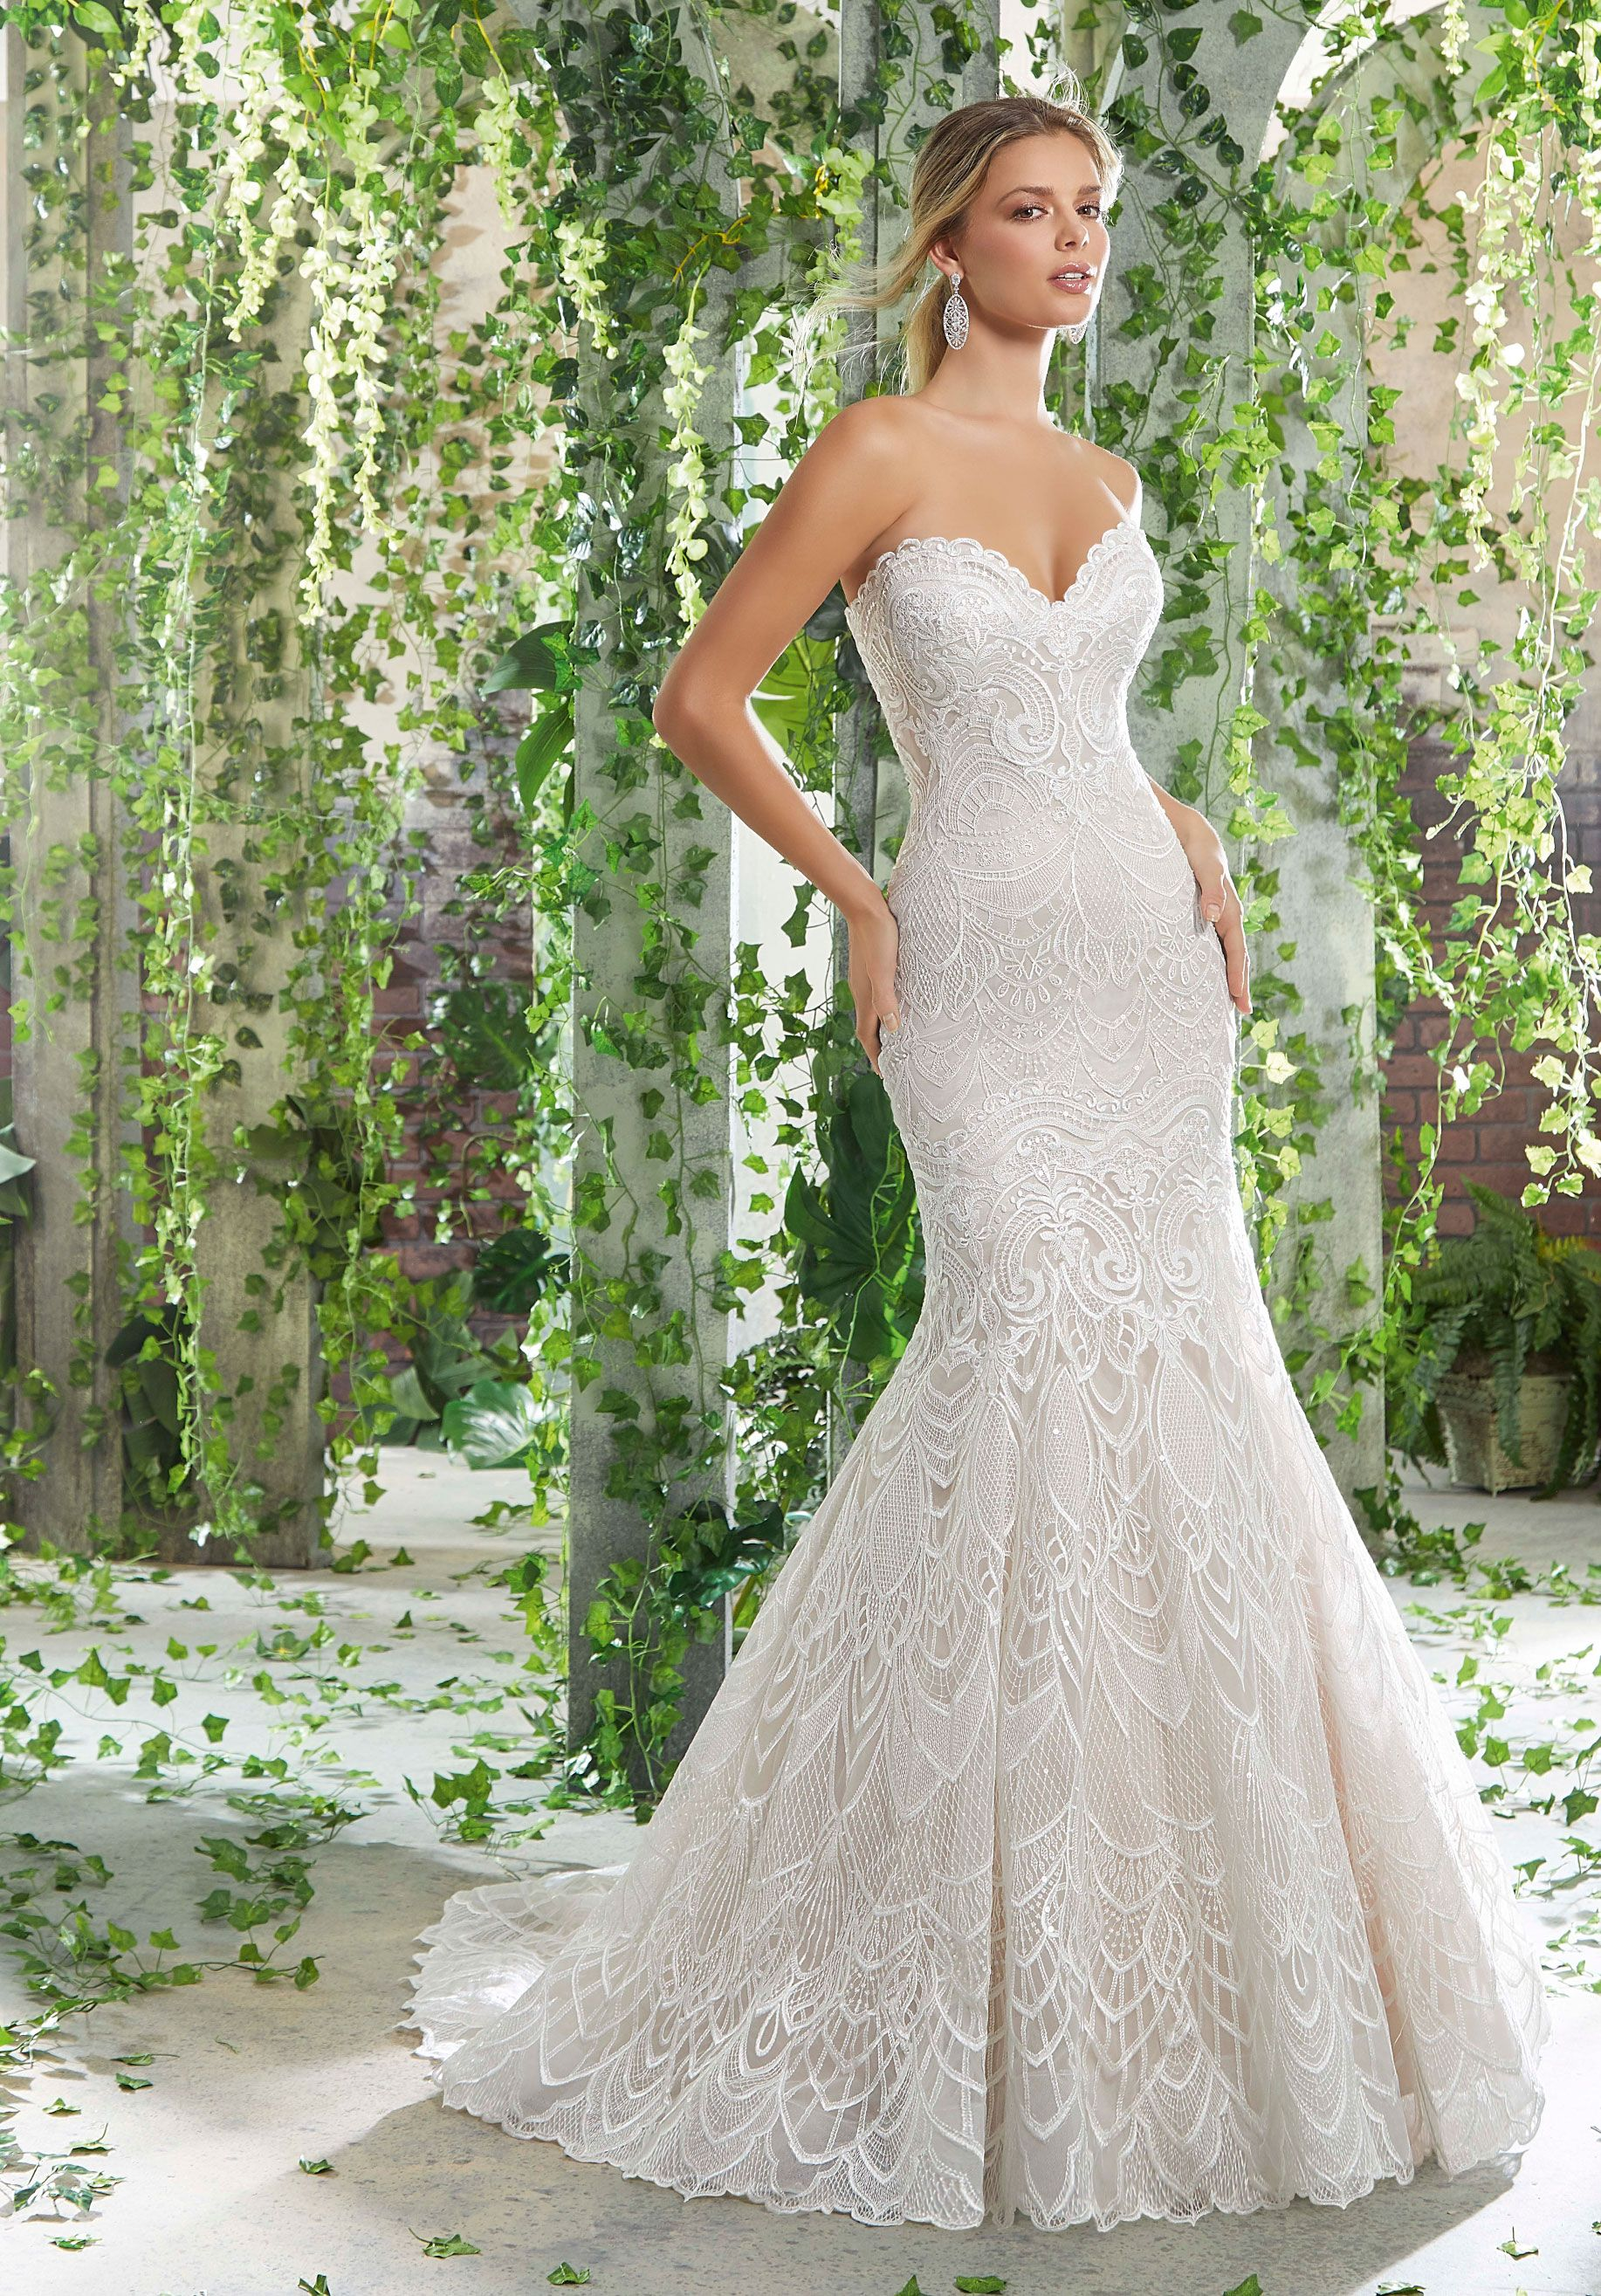 Pandora Wedding Dress Morilee Fit And Flare Wedding Dress Wedding Dress Styles Wedding Dress Couture [ 2630 x 1834 Pixel ]